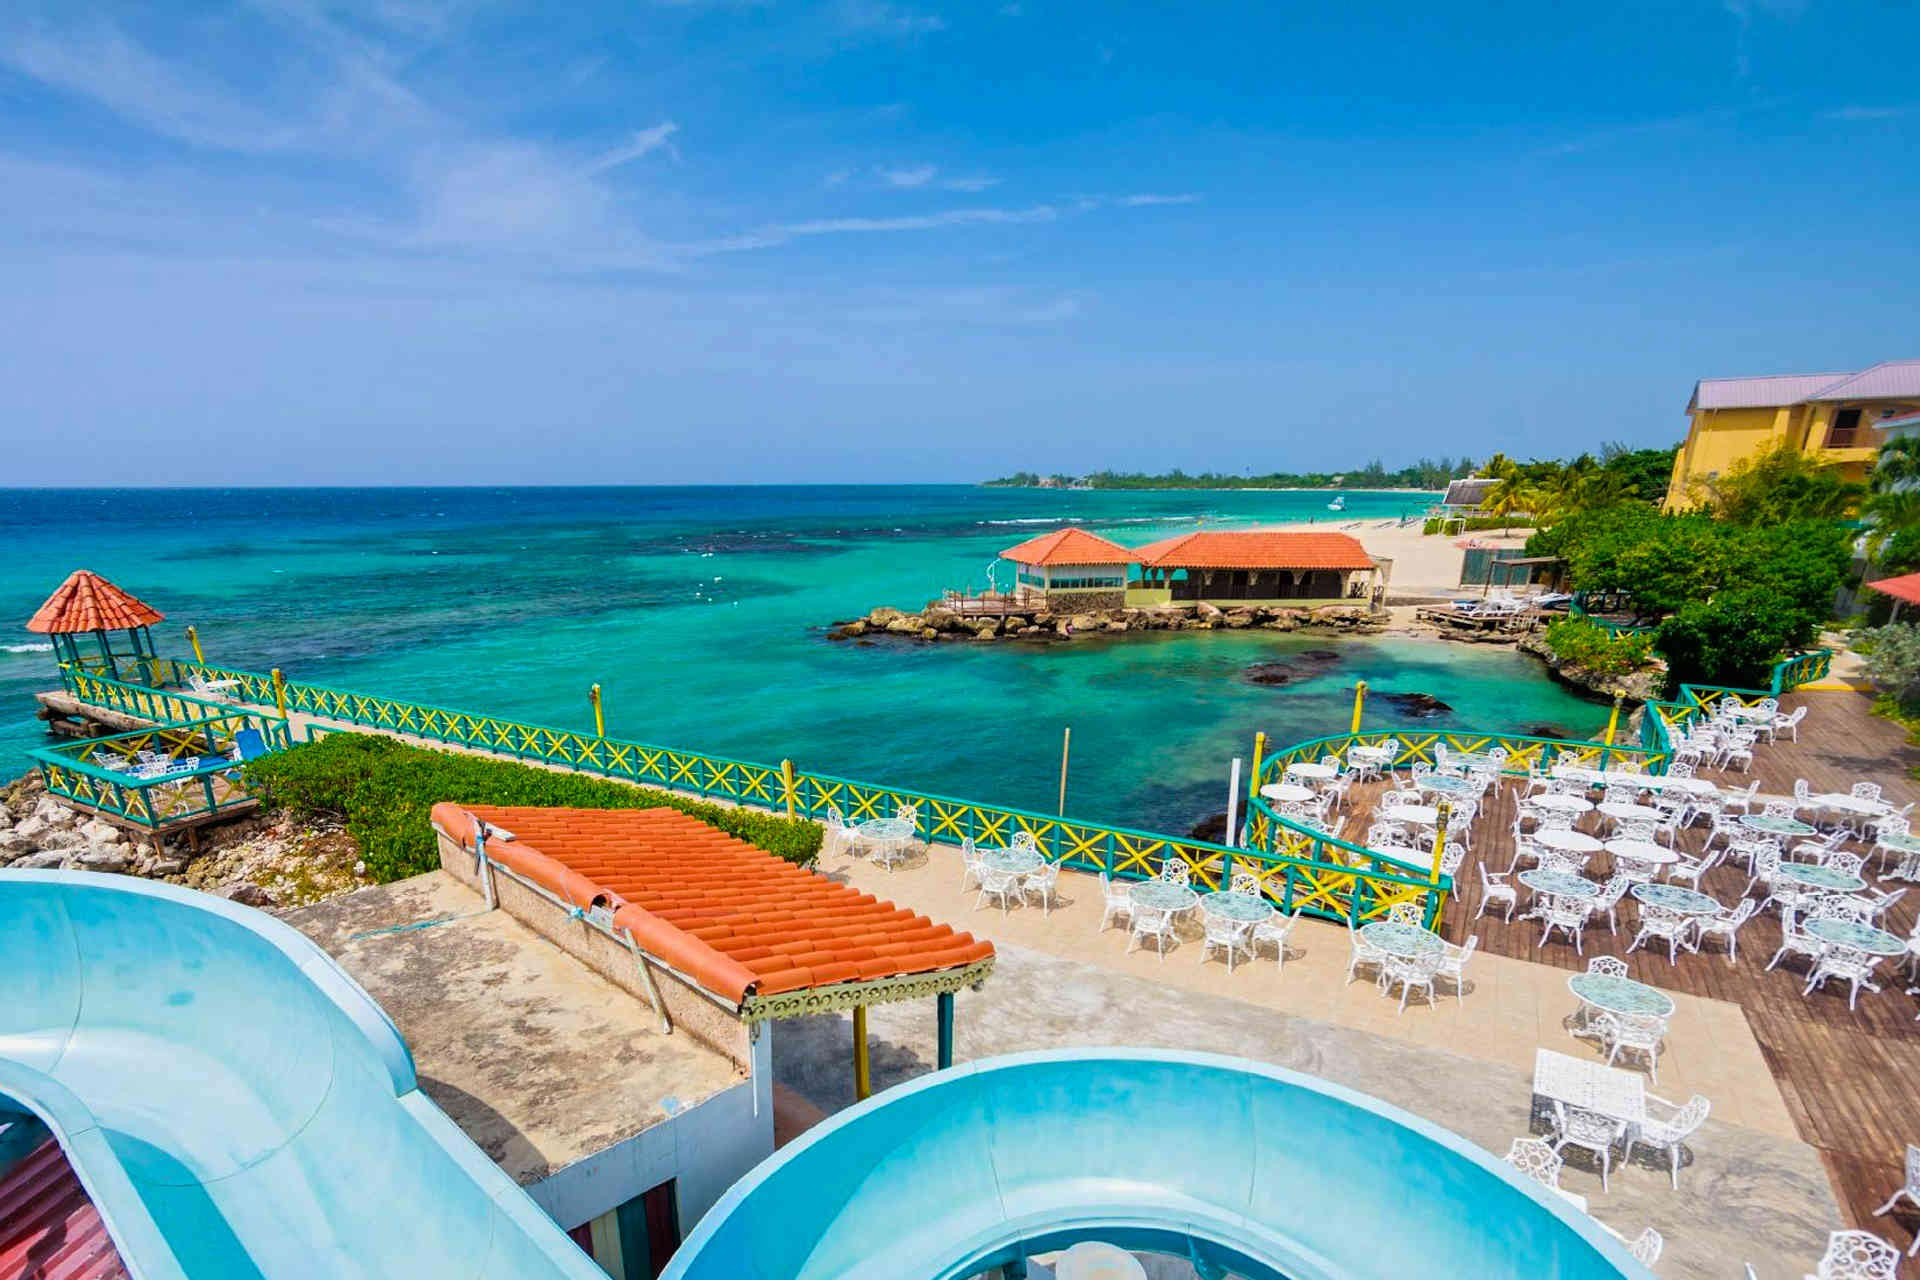 All Inclusive Resort 10 Best All Inclusive Caribbean Family Resorts For 2019 Family